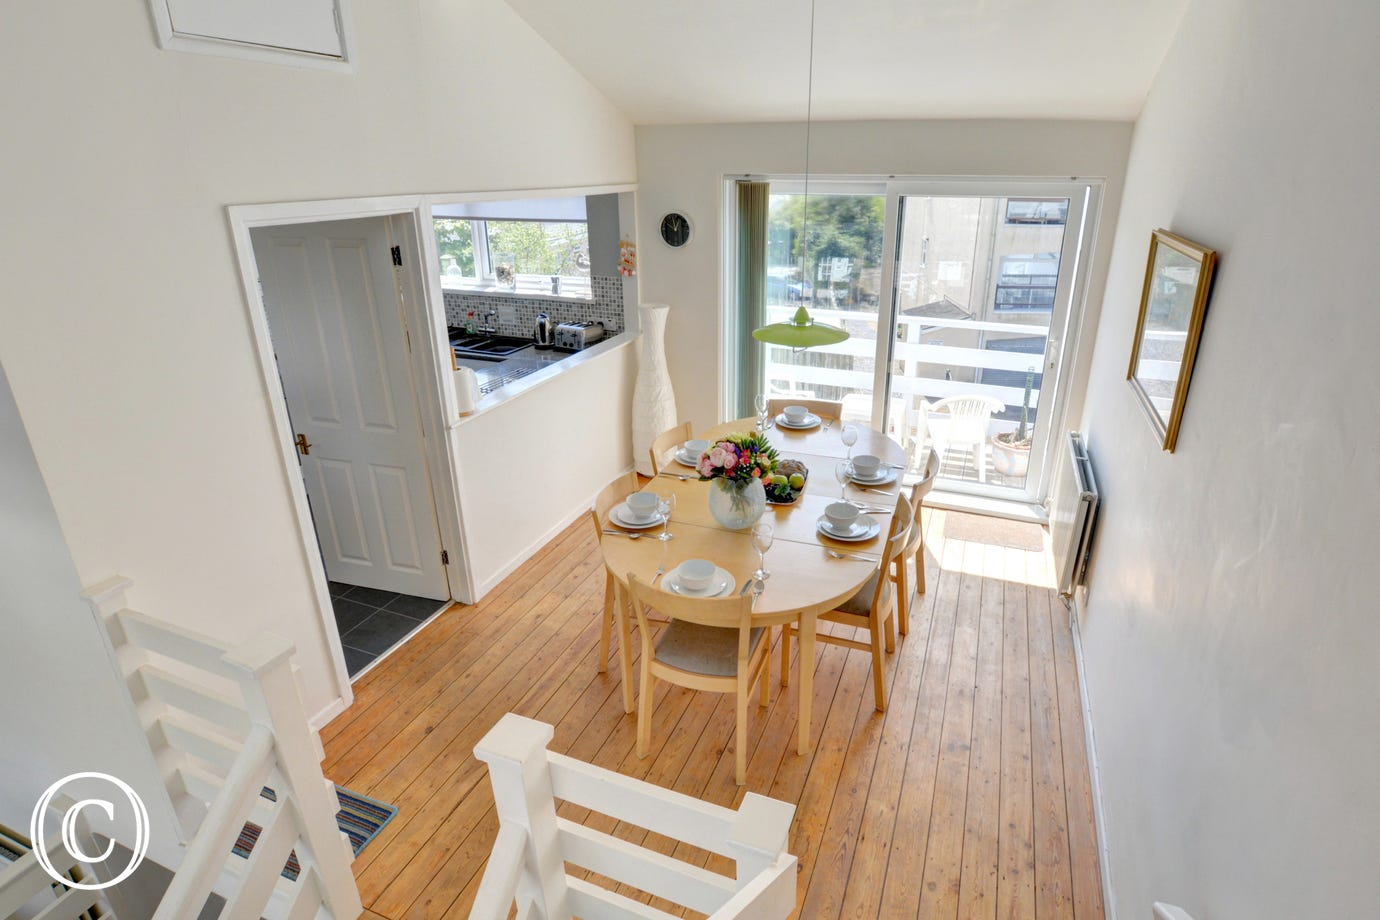 Stairs leading down from the top mezzanine area to the dining area and kitchen at this self catering holiday property.